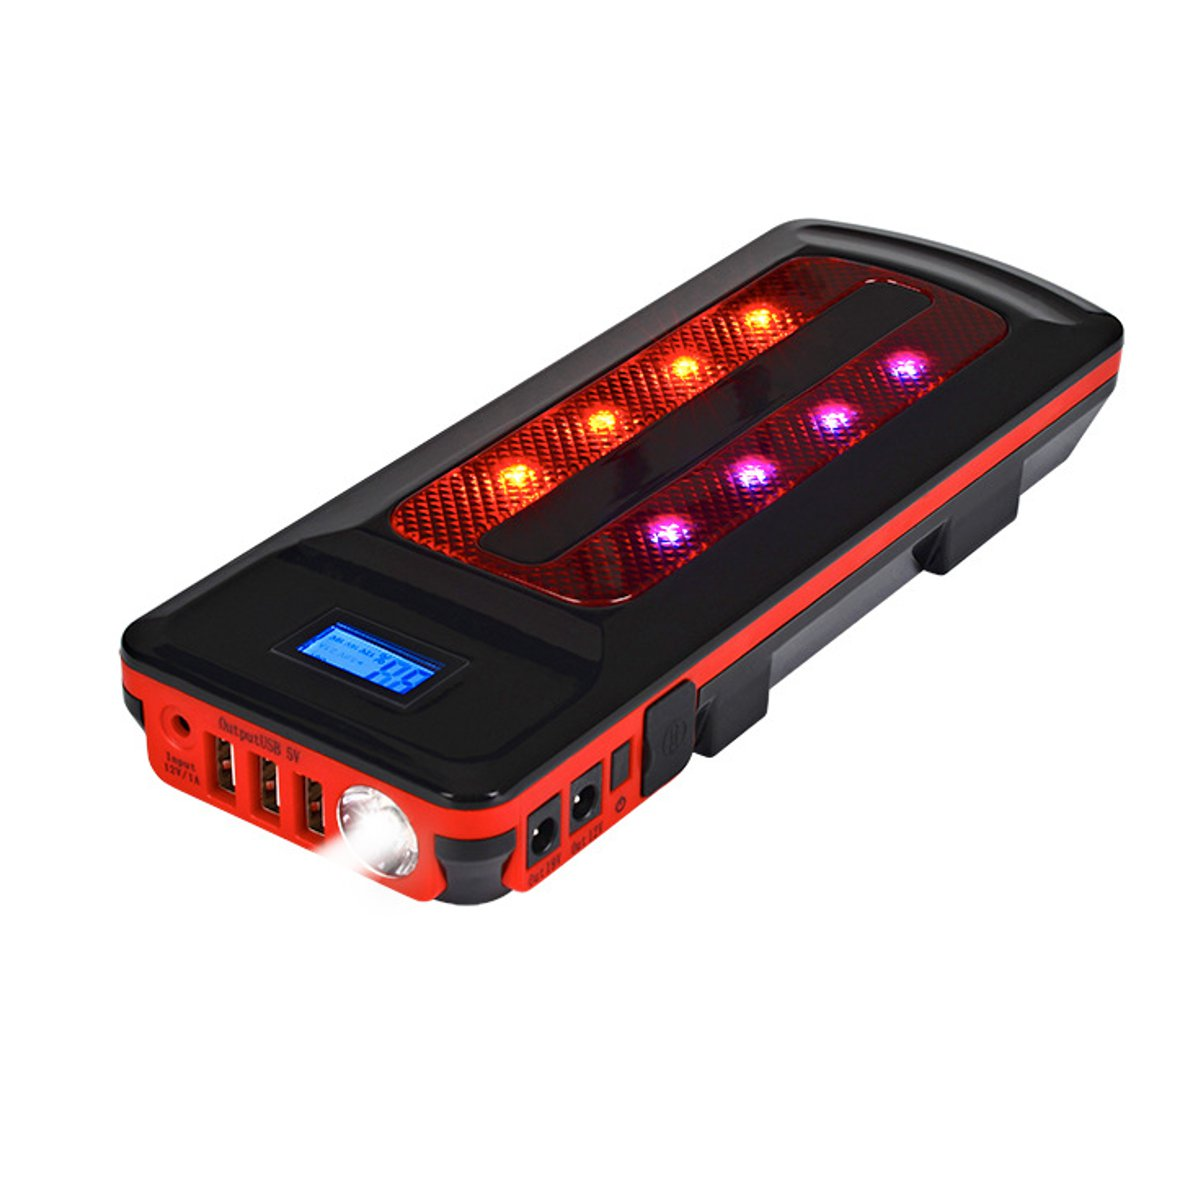 Built-in LED Light N//D 99800mAh Portable Car Jump Starter Battery Booster Phone Charger with Smart Charging Port